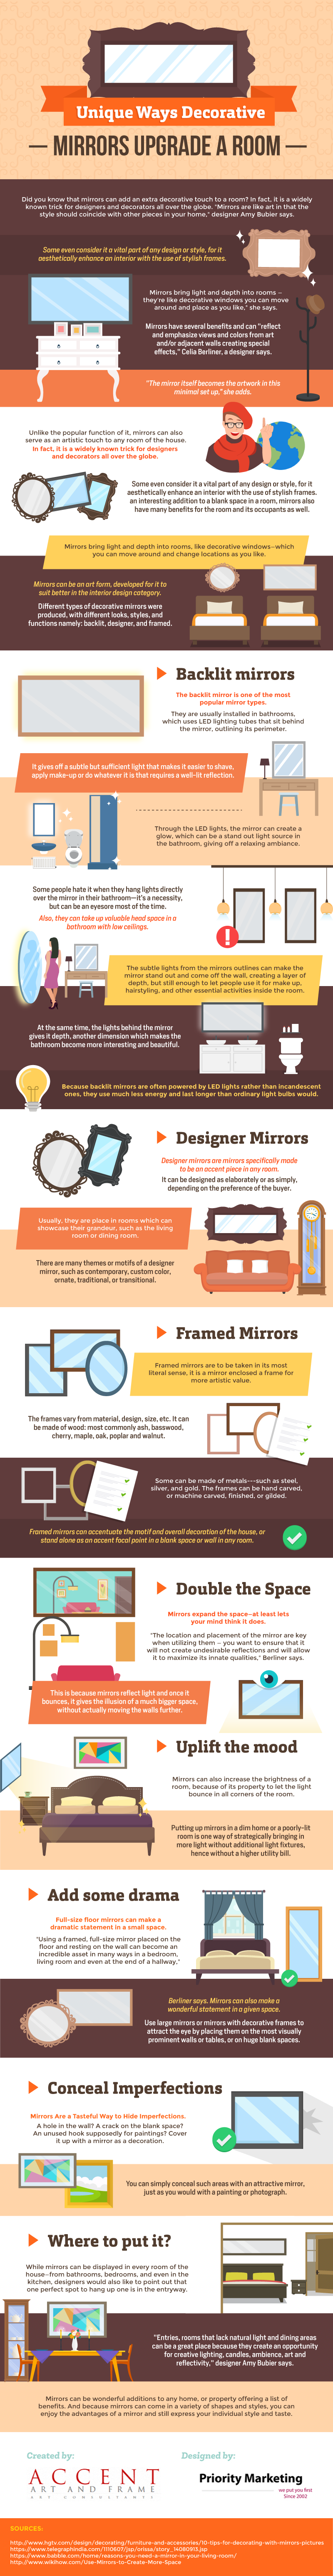 Unique Ways Decorative Mirror Upgrade A Room Infographic